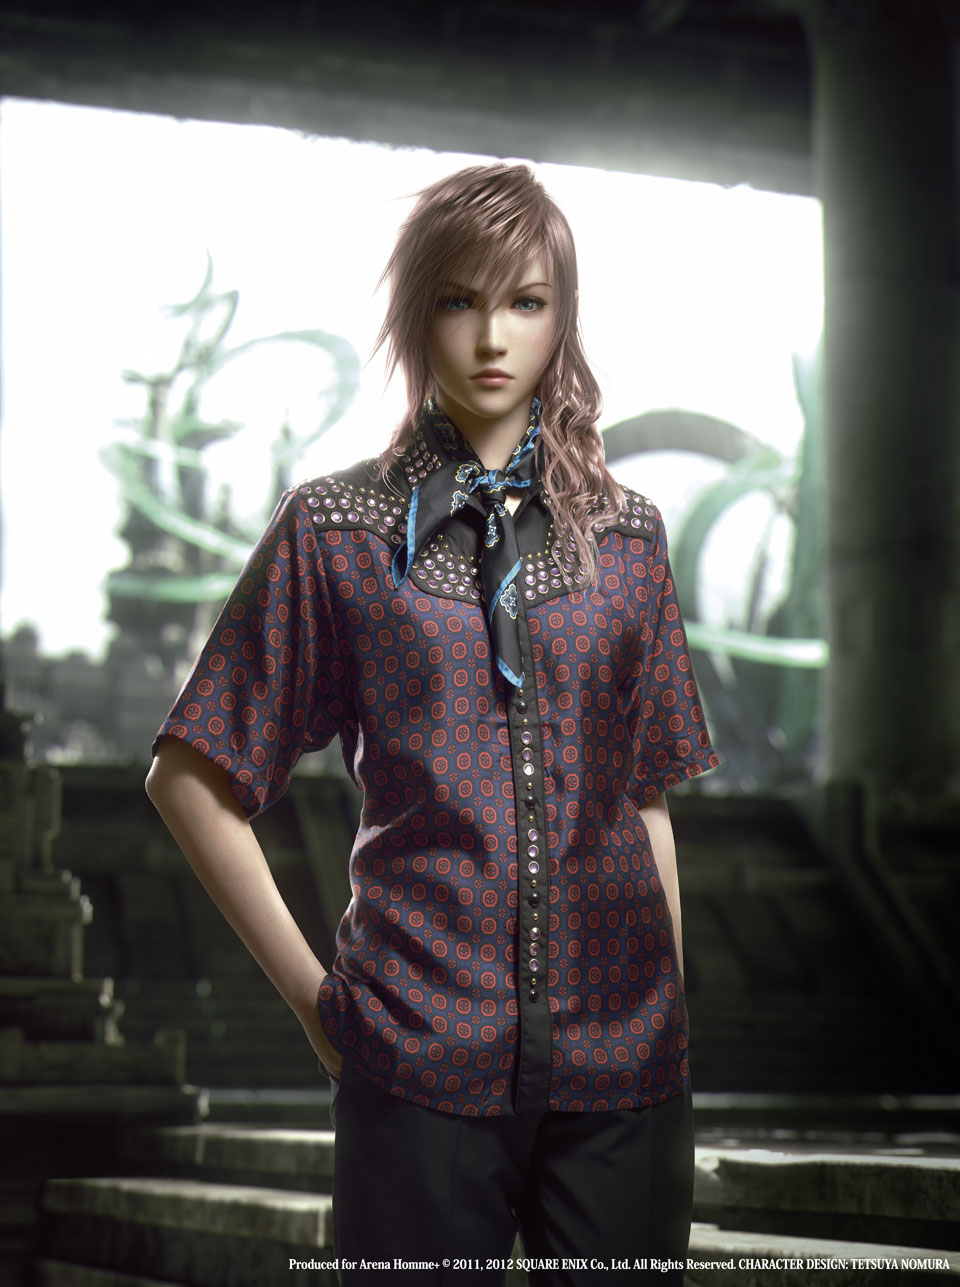 Final Fantasy XIII 2 moda Prada Lighting Personajes de Final Fantasy XIII 2 se visten de Prada